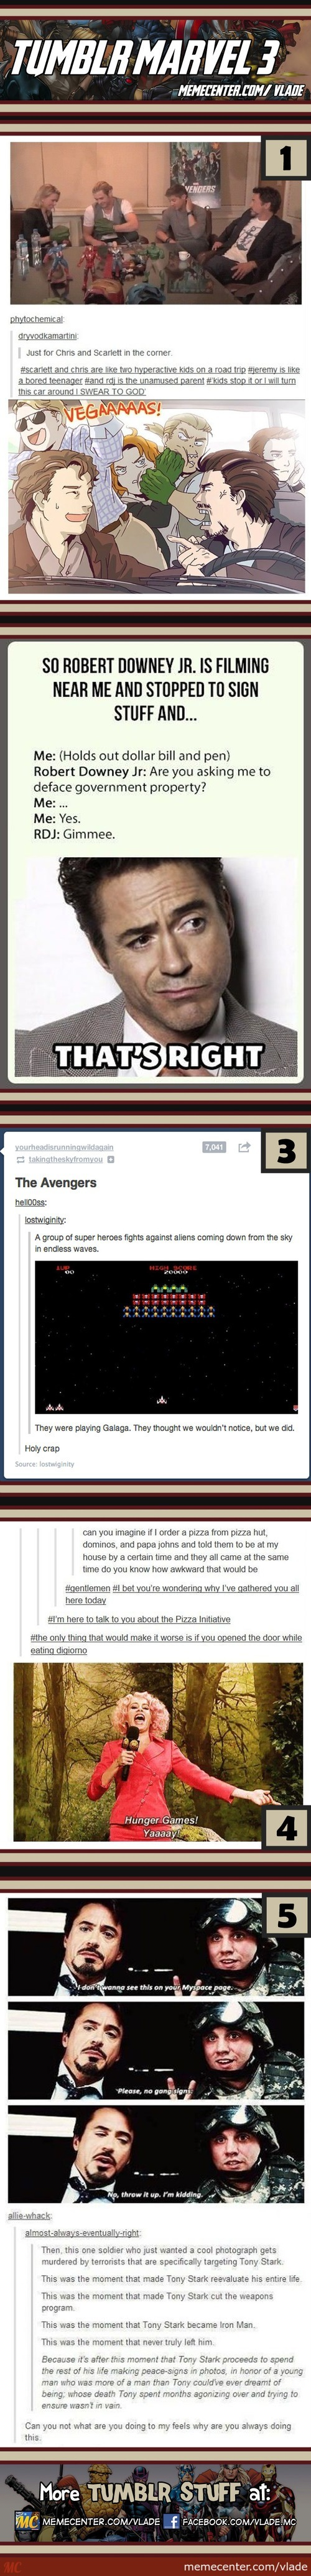 Tumblr Marvel #3